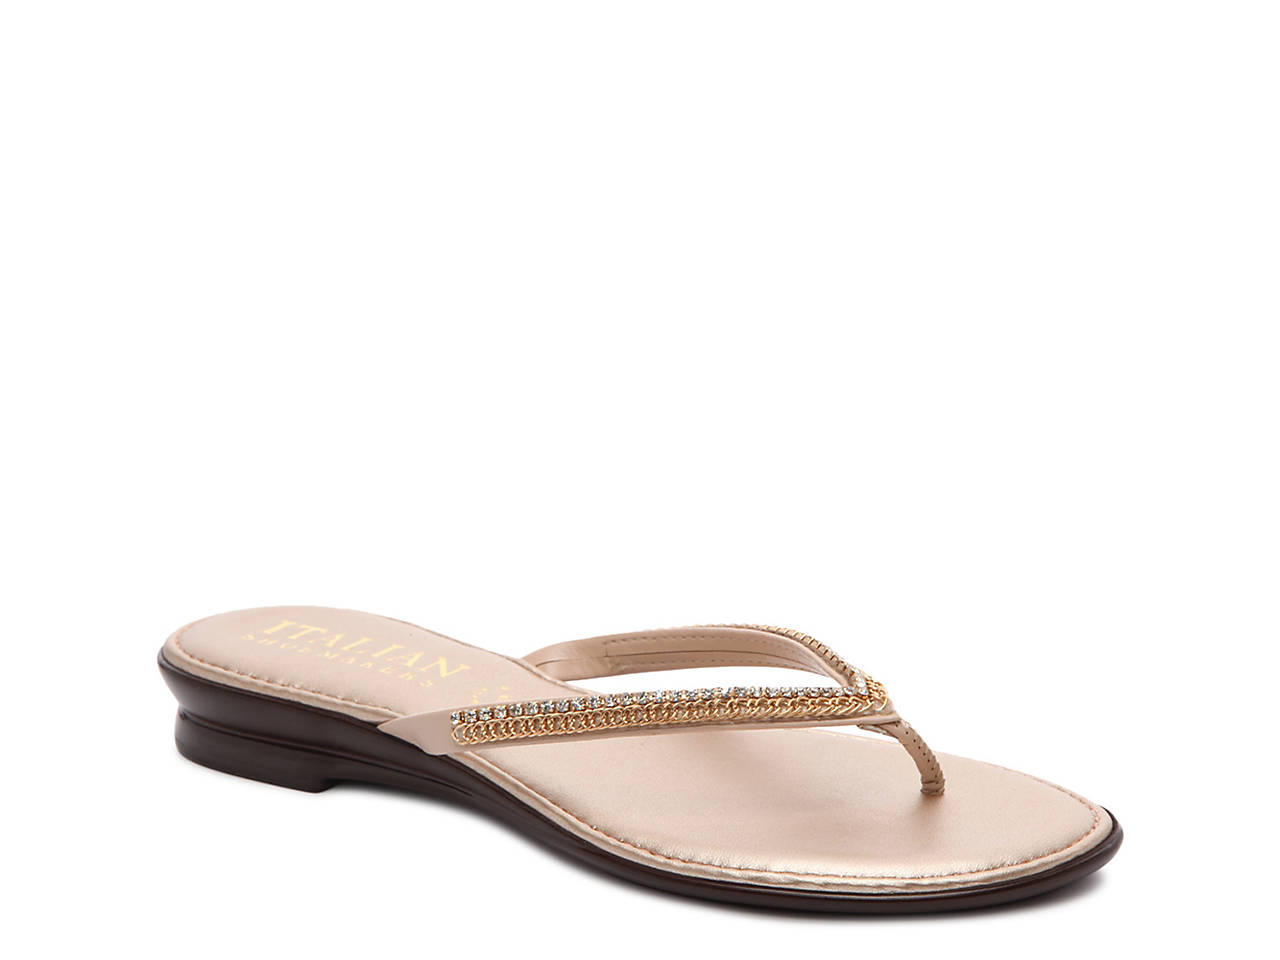 6a1ab41b2e6aa0 Italian Shoemakers Kennedy Sandal Women s Shoes